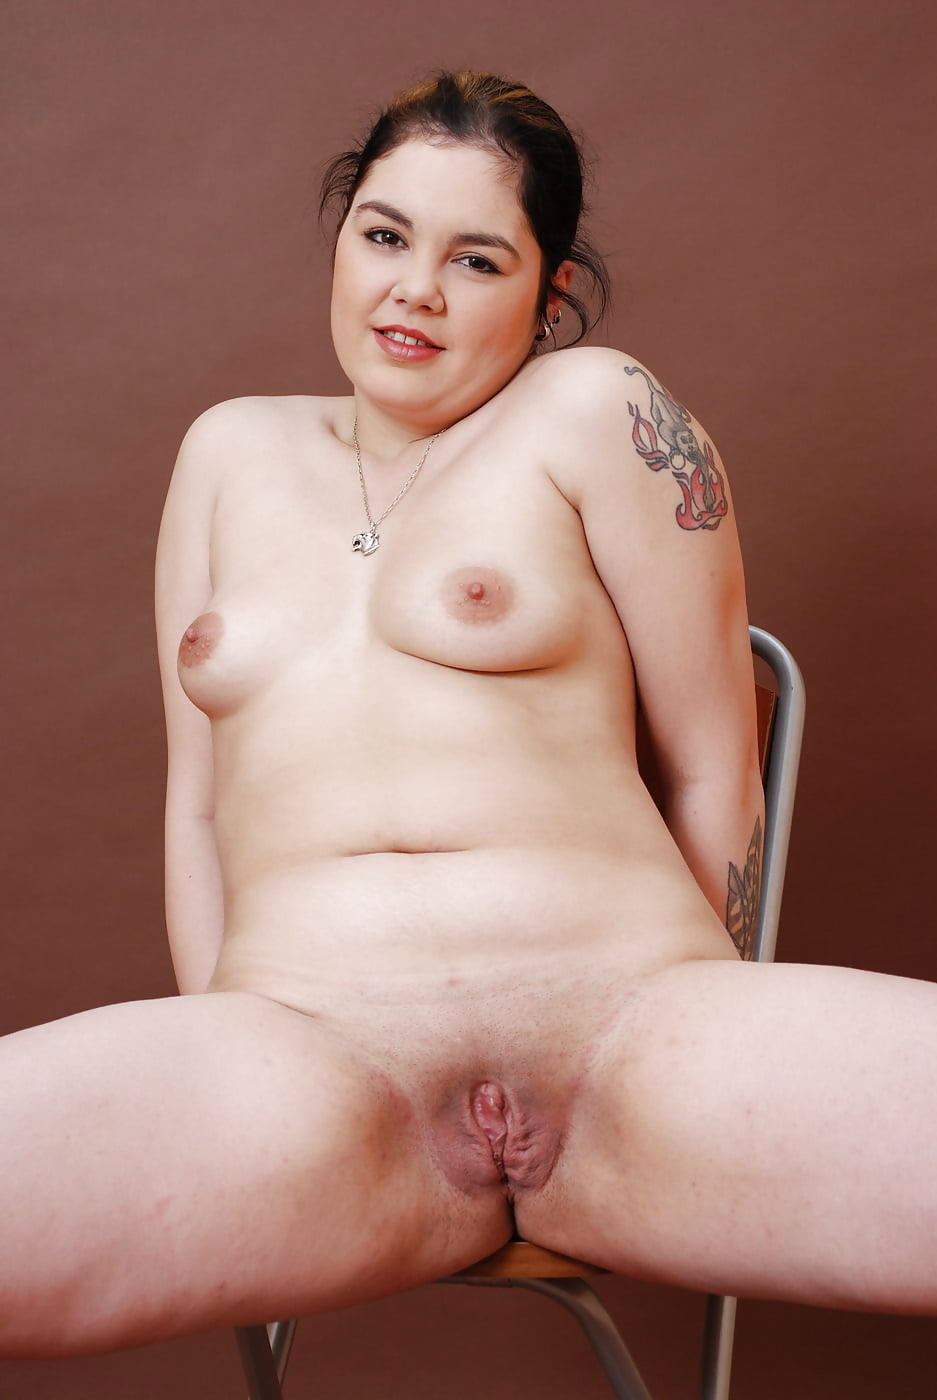 Smaller bbws nude girls, young emosluts